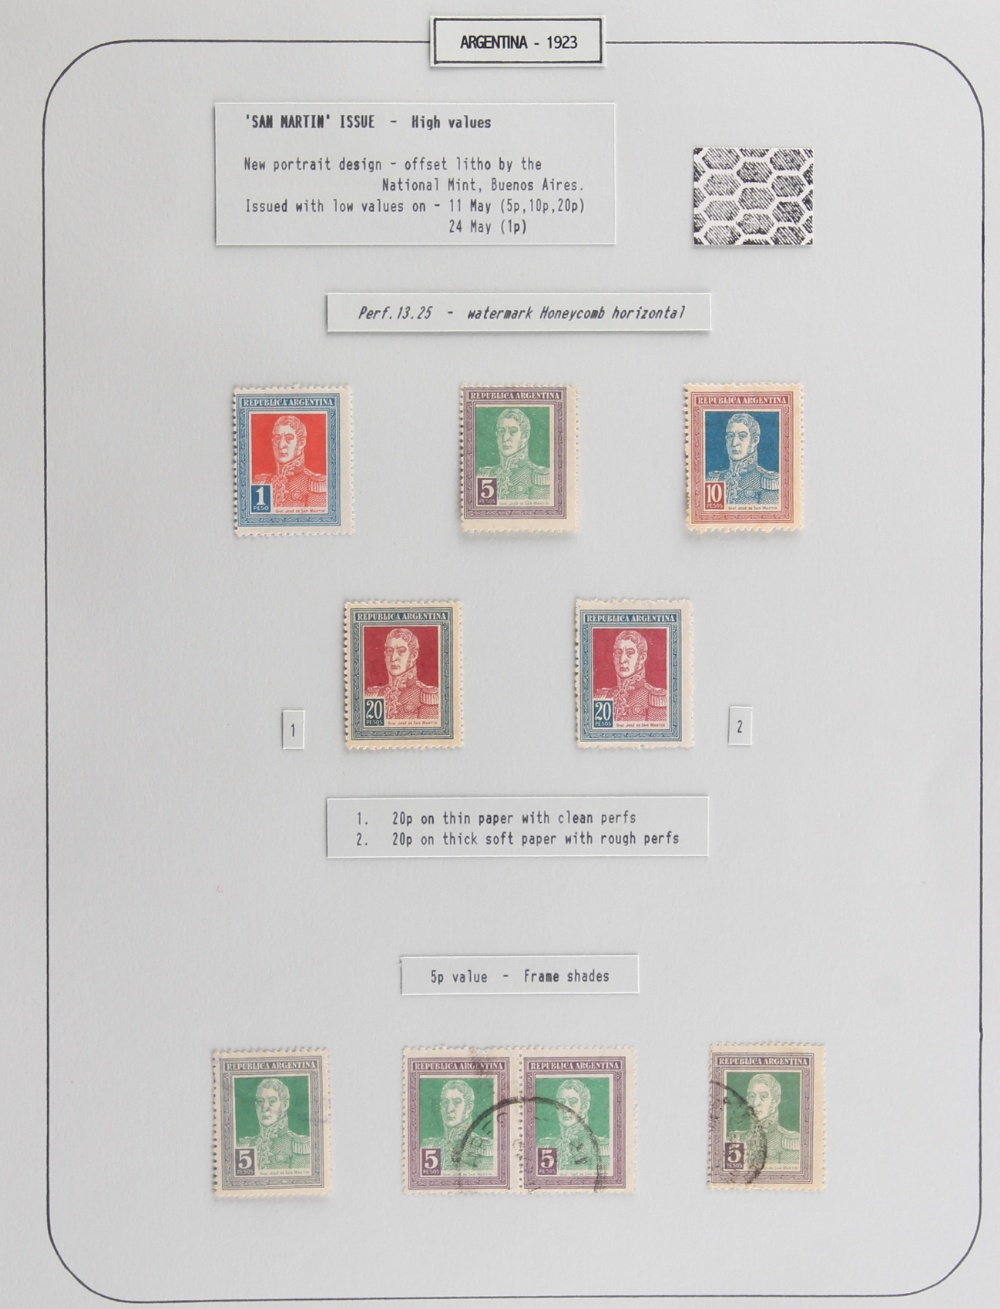 The Basil Lewis (1927-2019) collection of stamps - Argentina: 1923-35 San Martin, a specialized